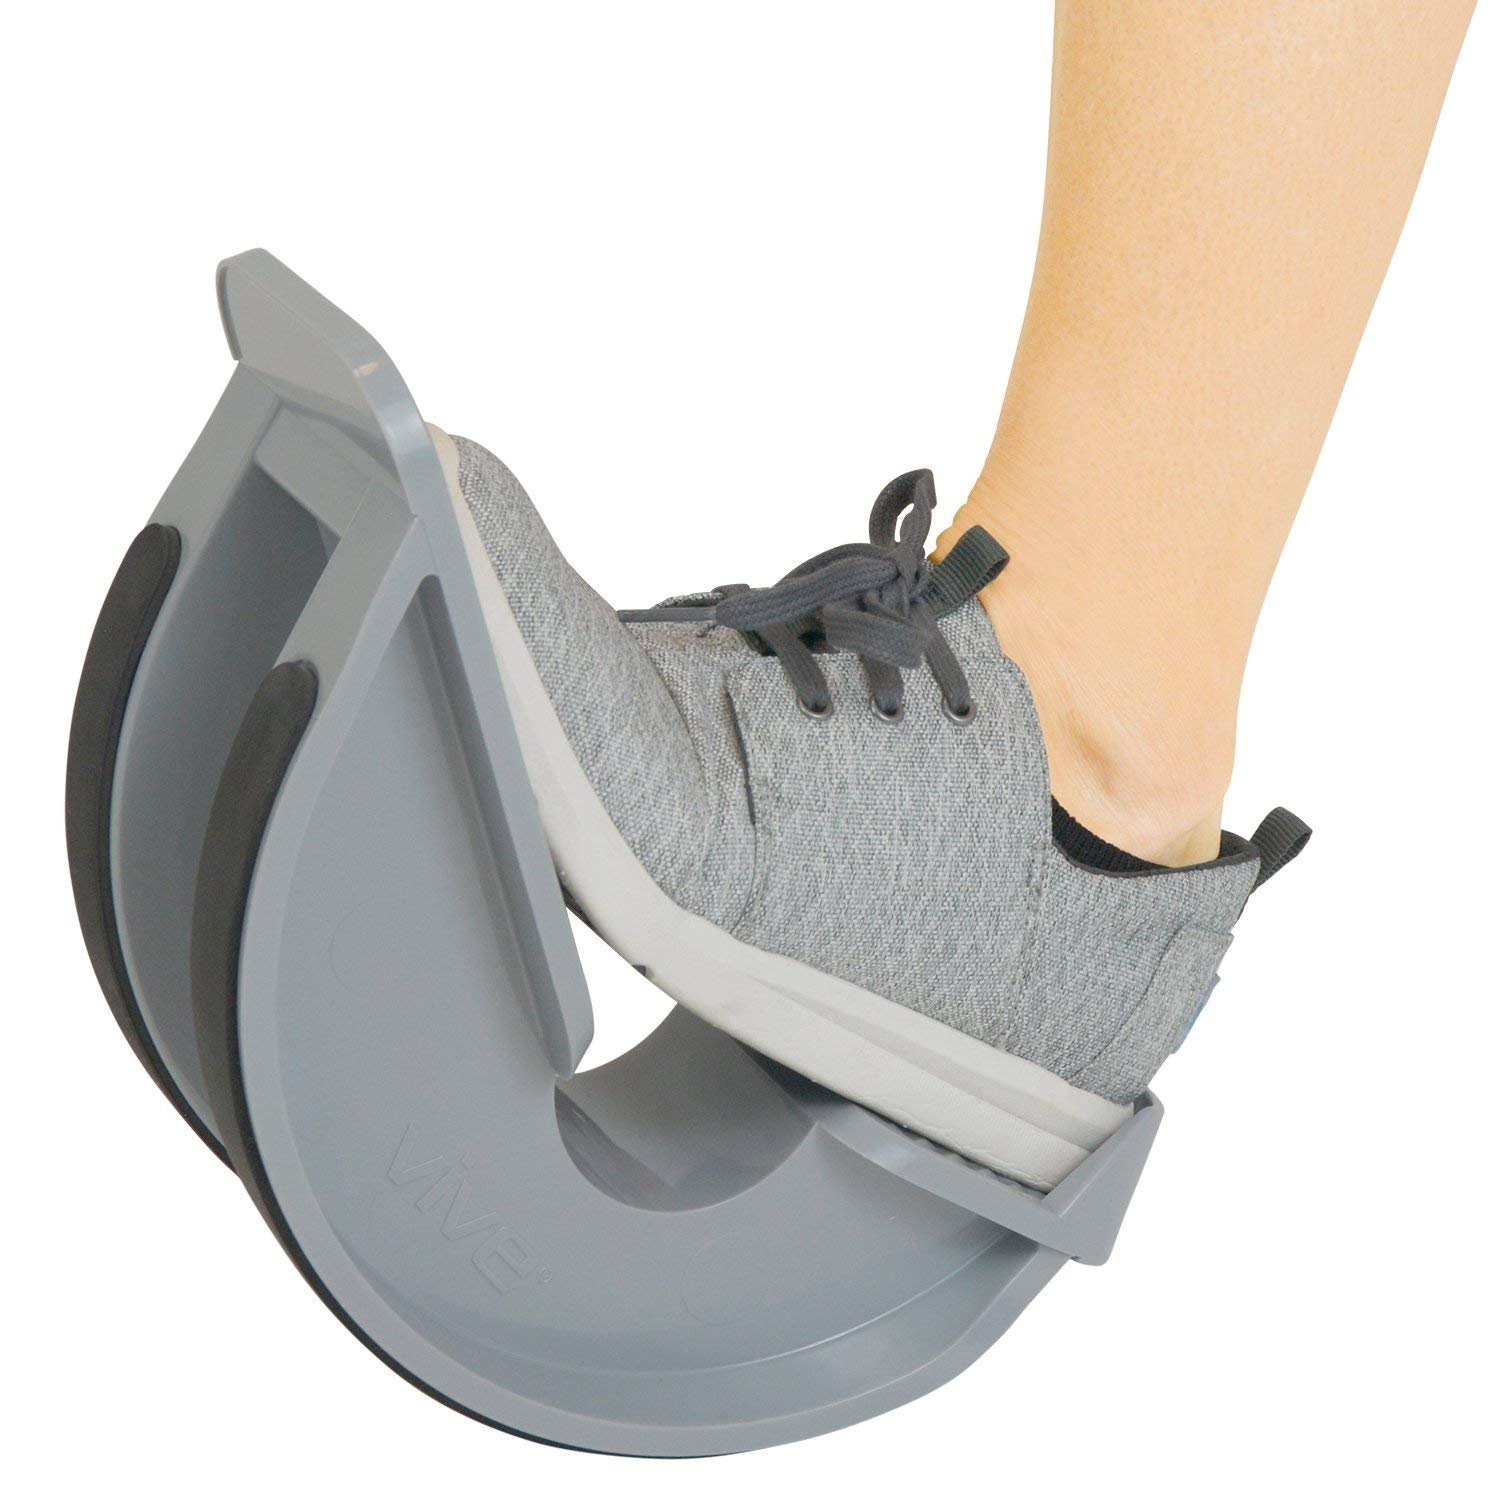 stretching routine best tools post-workout amazon VIVE Foot Rocker